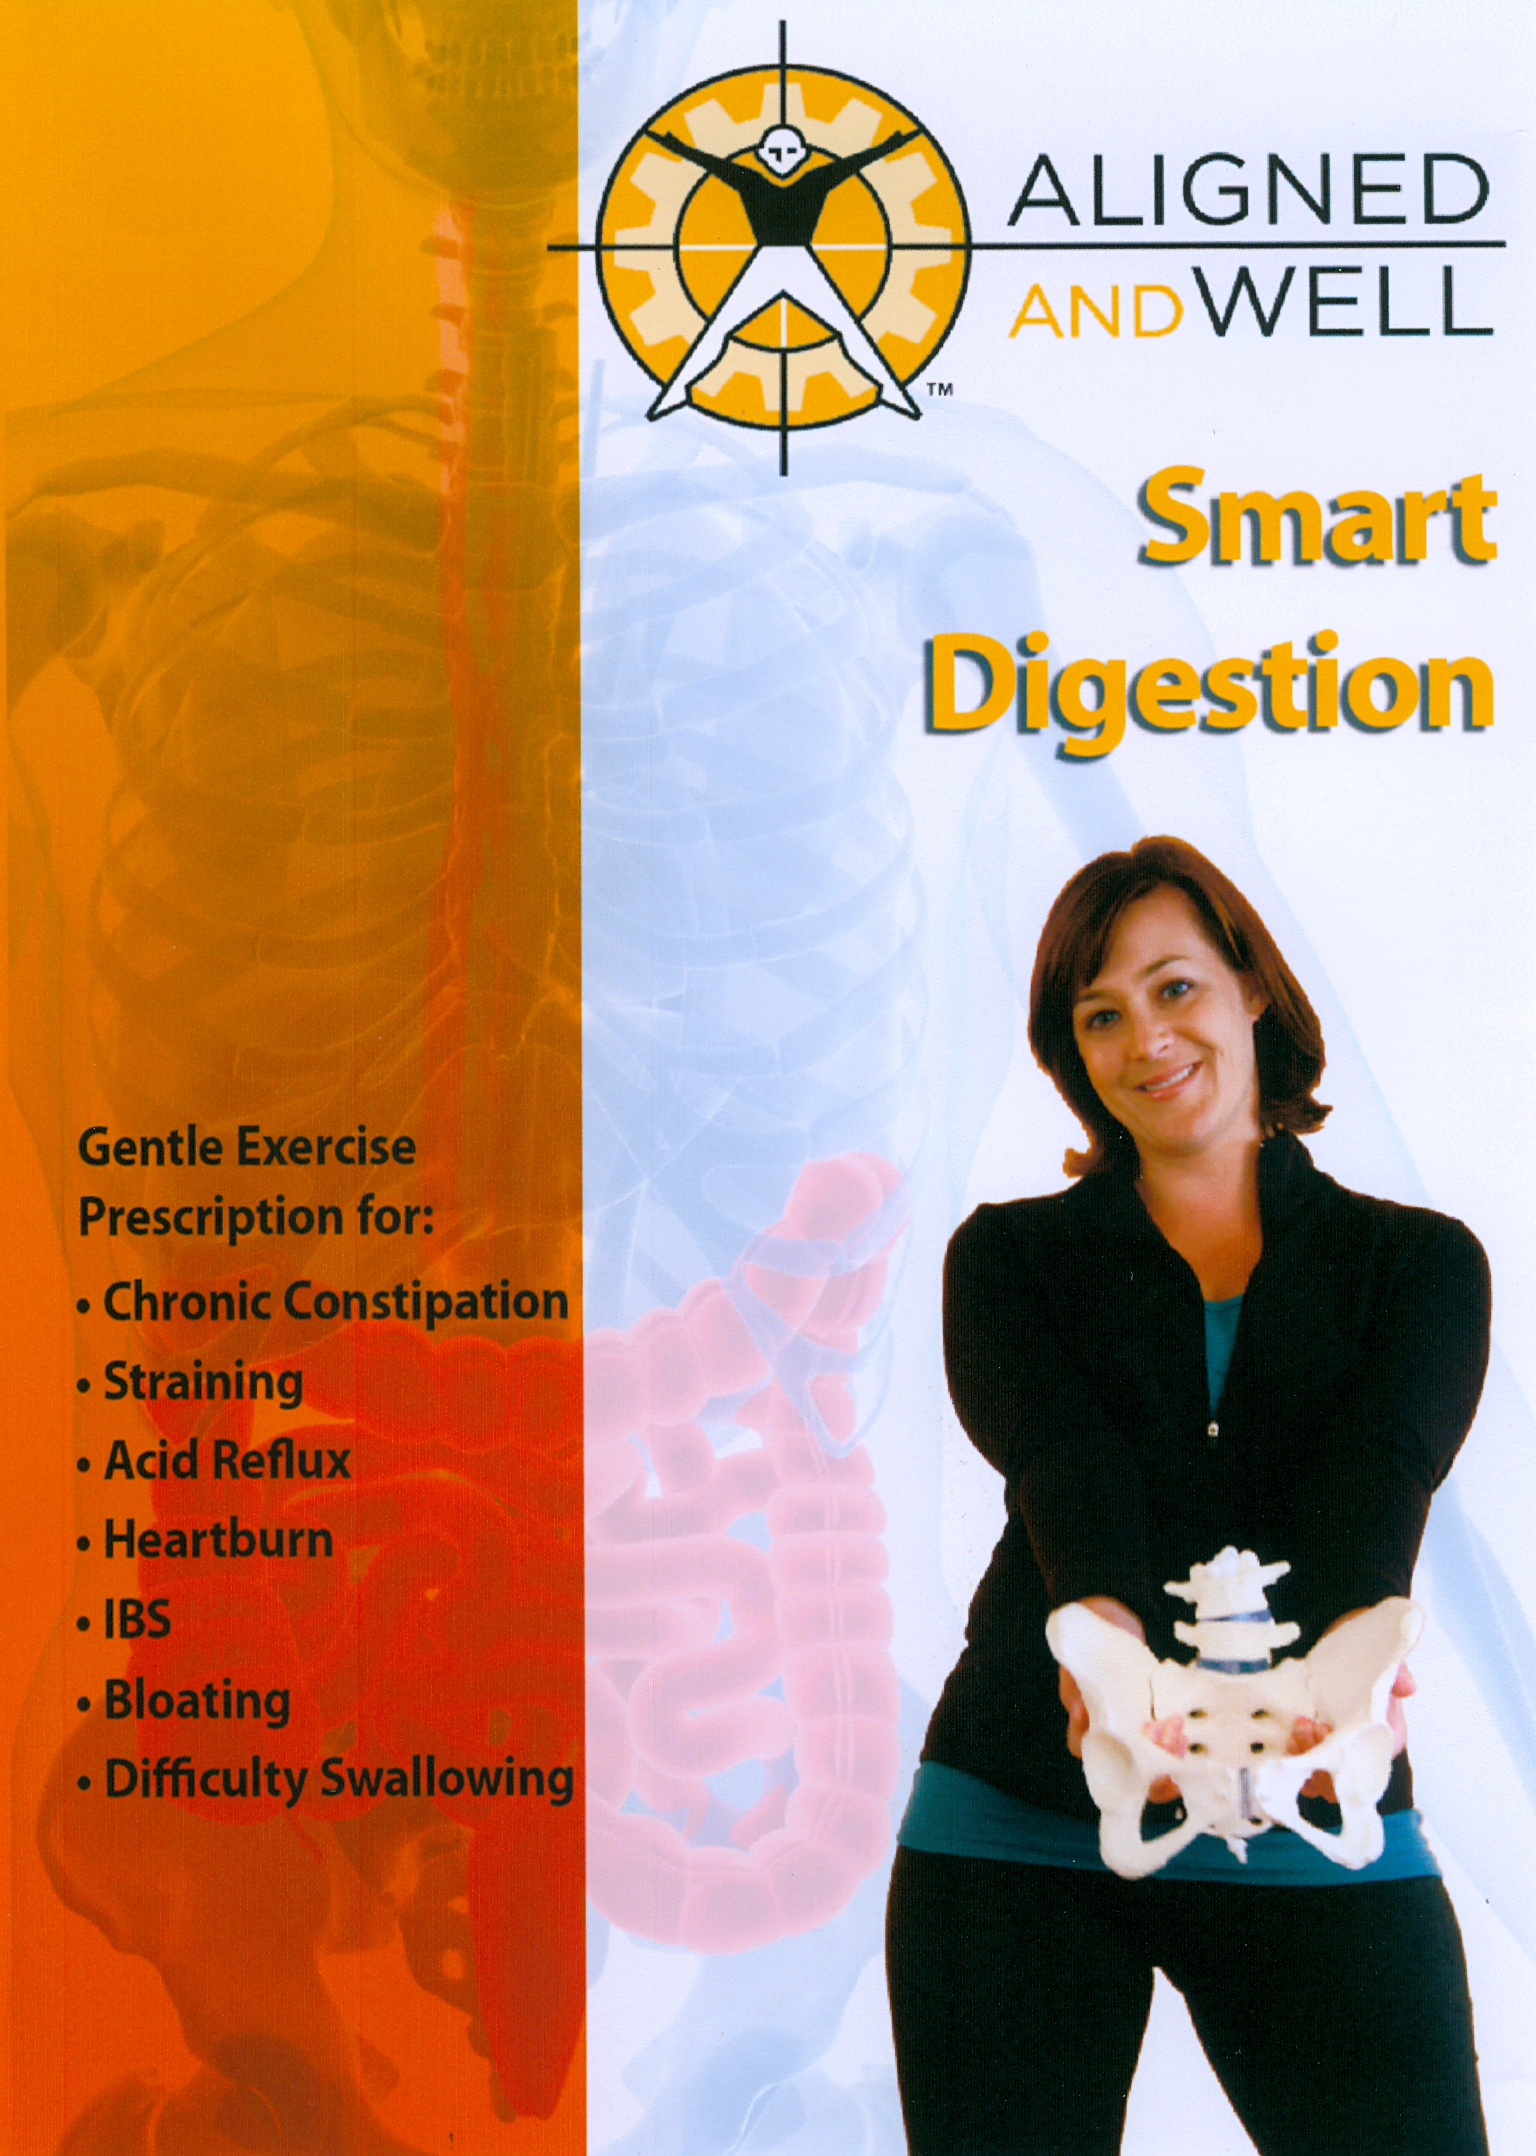 Aligned and Well: Smart Digestion